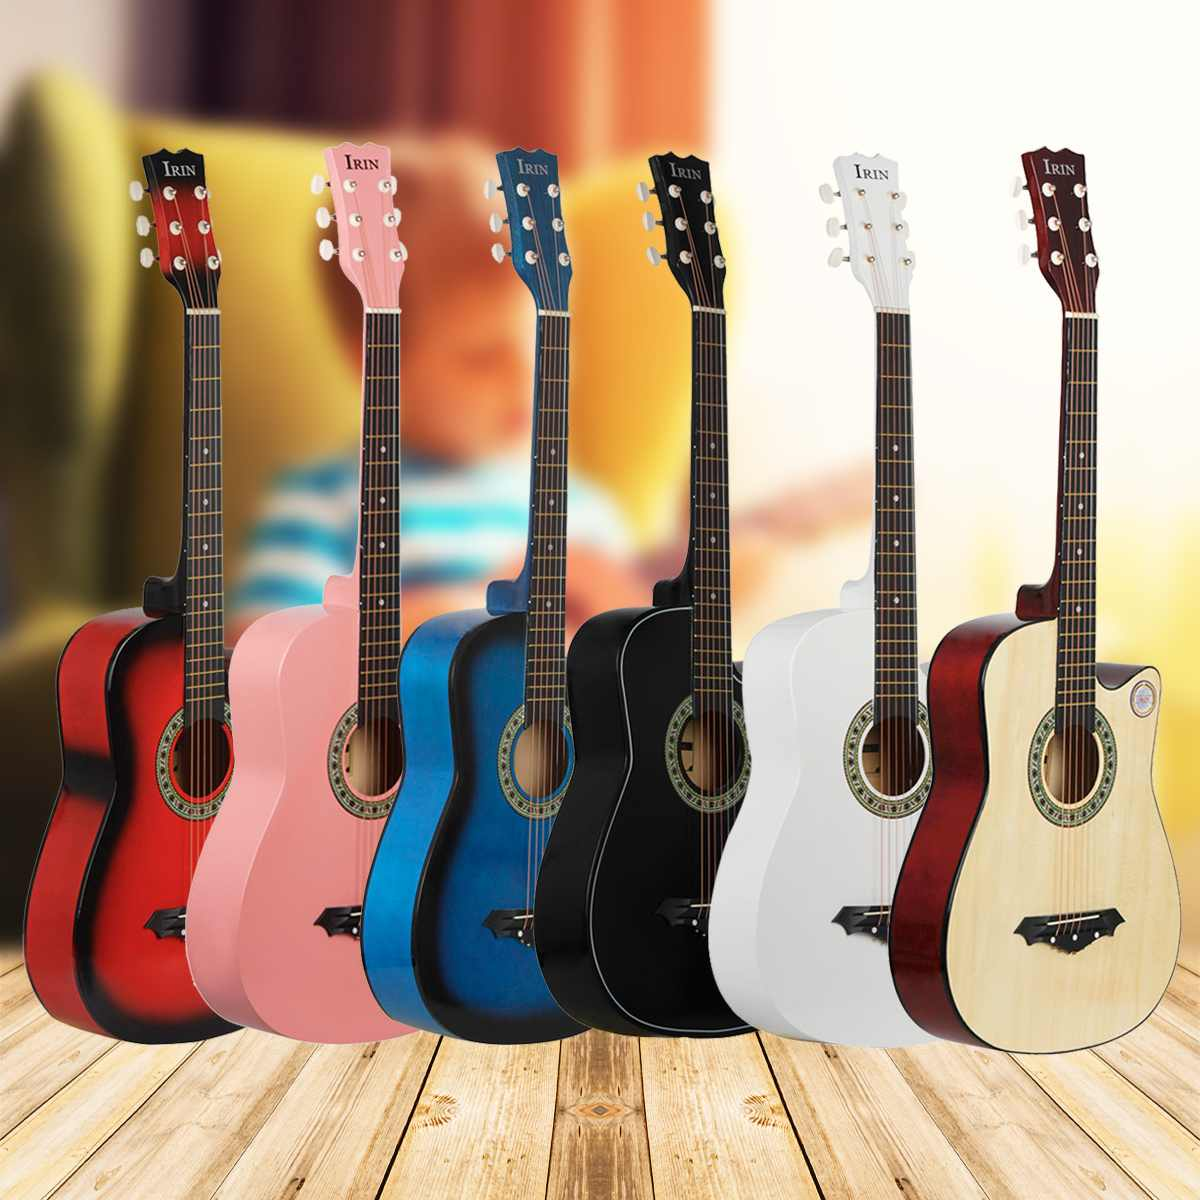 IRIN 6 Color 38 Inch Guitar Acoustic Guitar Beginners Getting Started Practicing Guitar Stringed Instruments Guitar For MusicalIRIN 6 Color 38 Inch Guitar Acoustic Guitar Beginners Getting Started Practicing Guitar Stringed Instruments Guitar For Musical